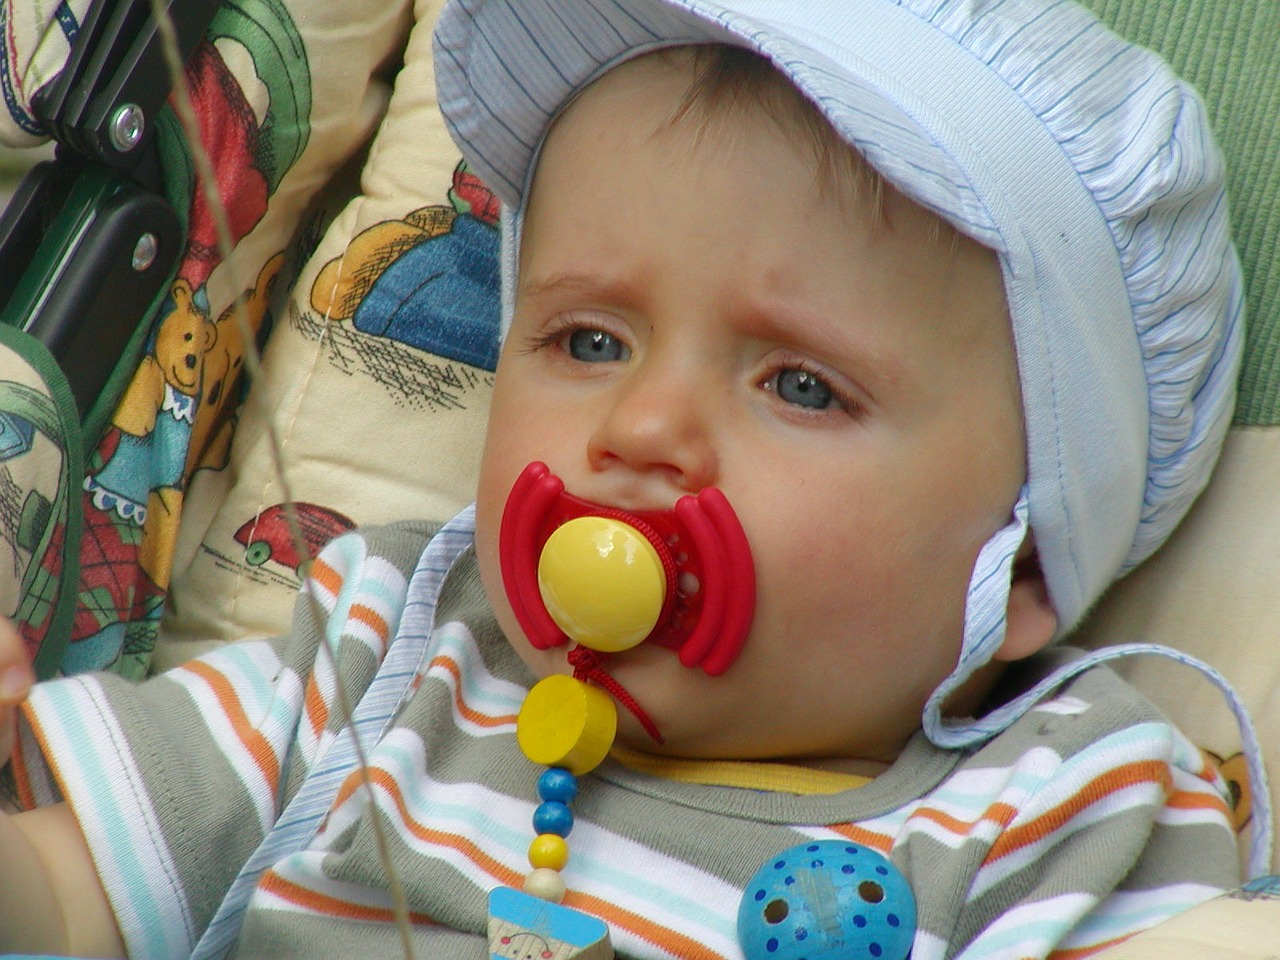 pacifier baby carriage small child free photo